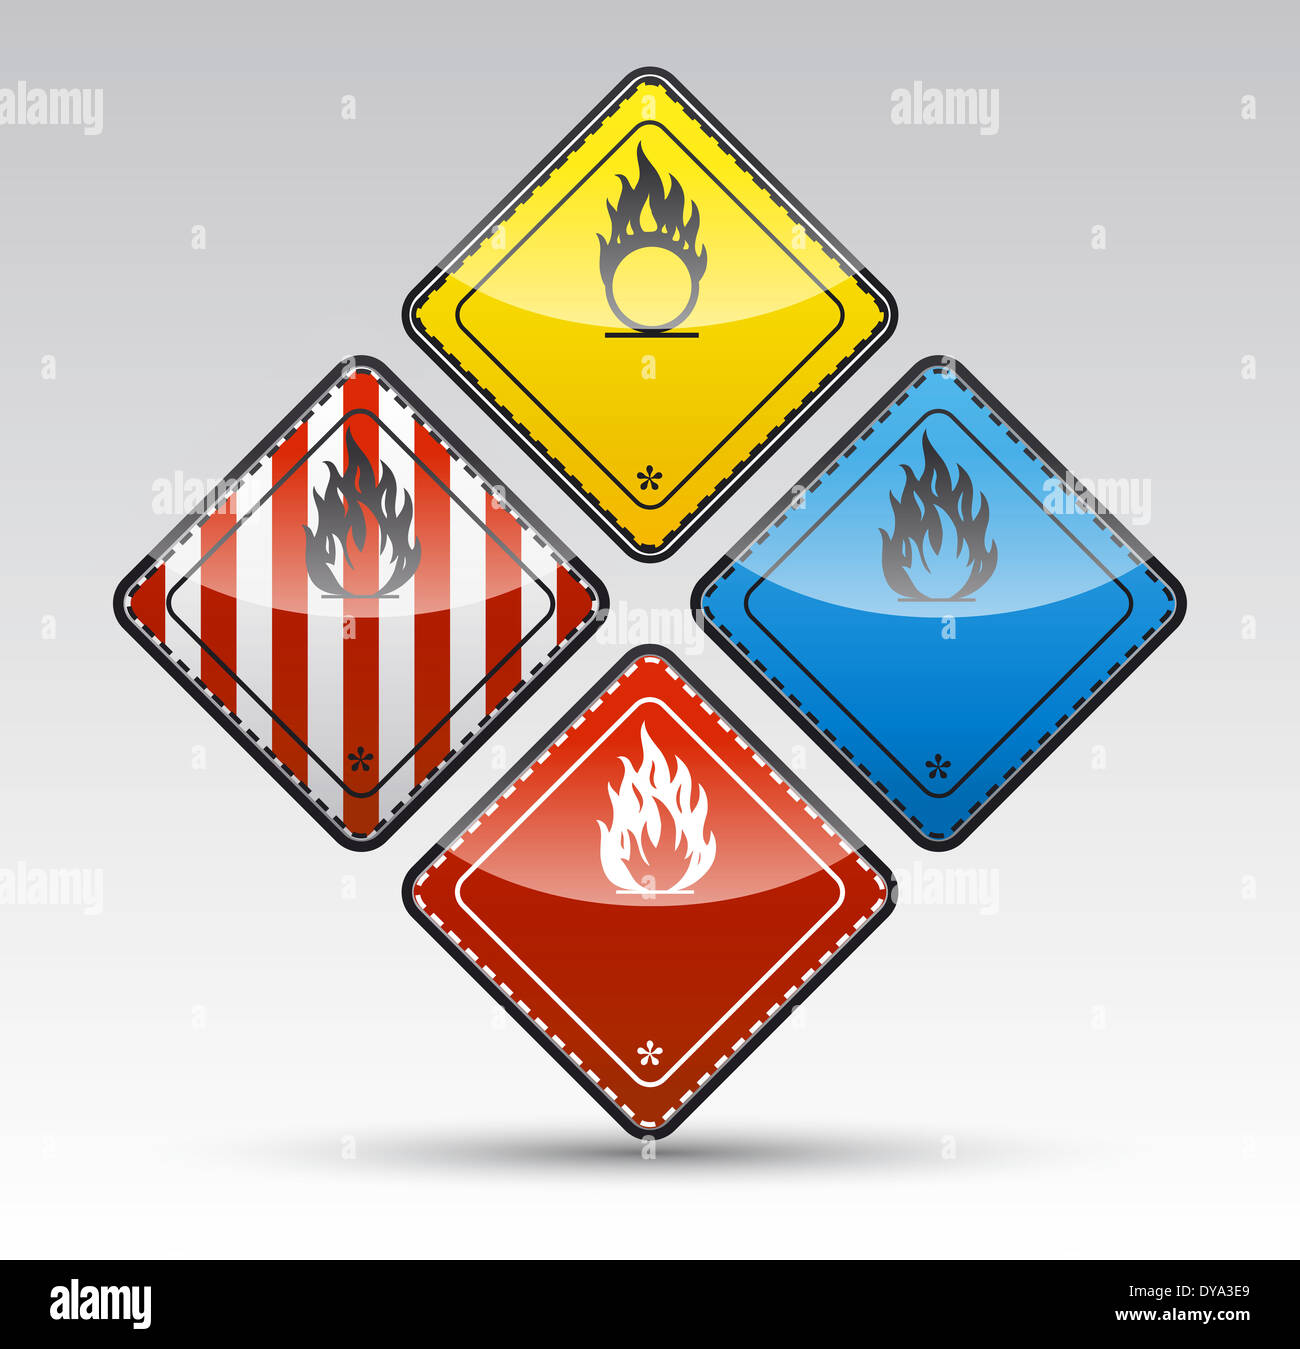 Isolated Danger flammable sign collection with black border, reflection and shadow on light background - Stock Image